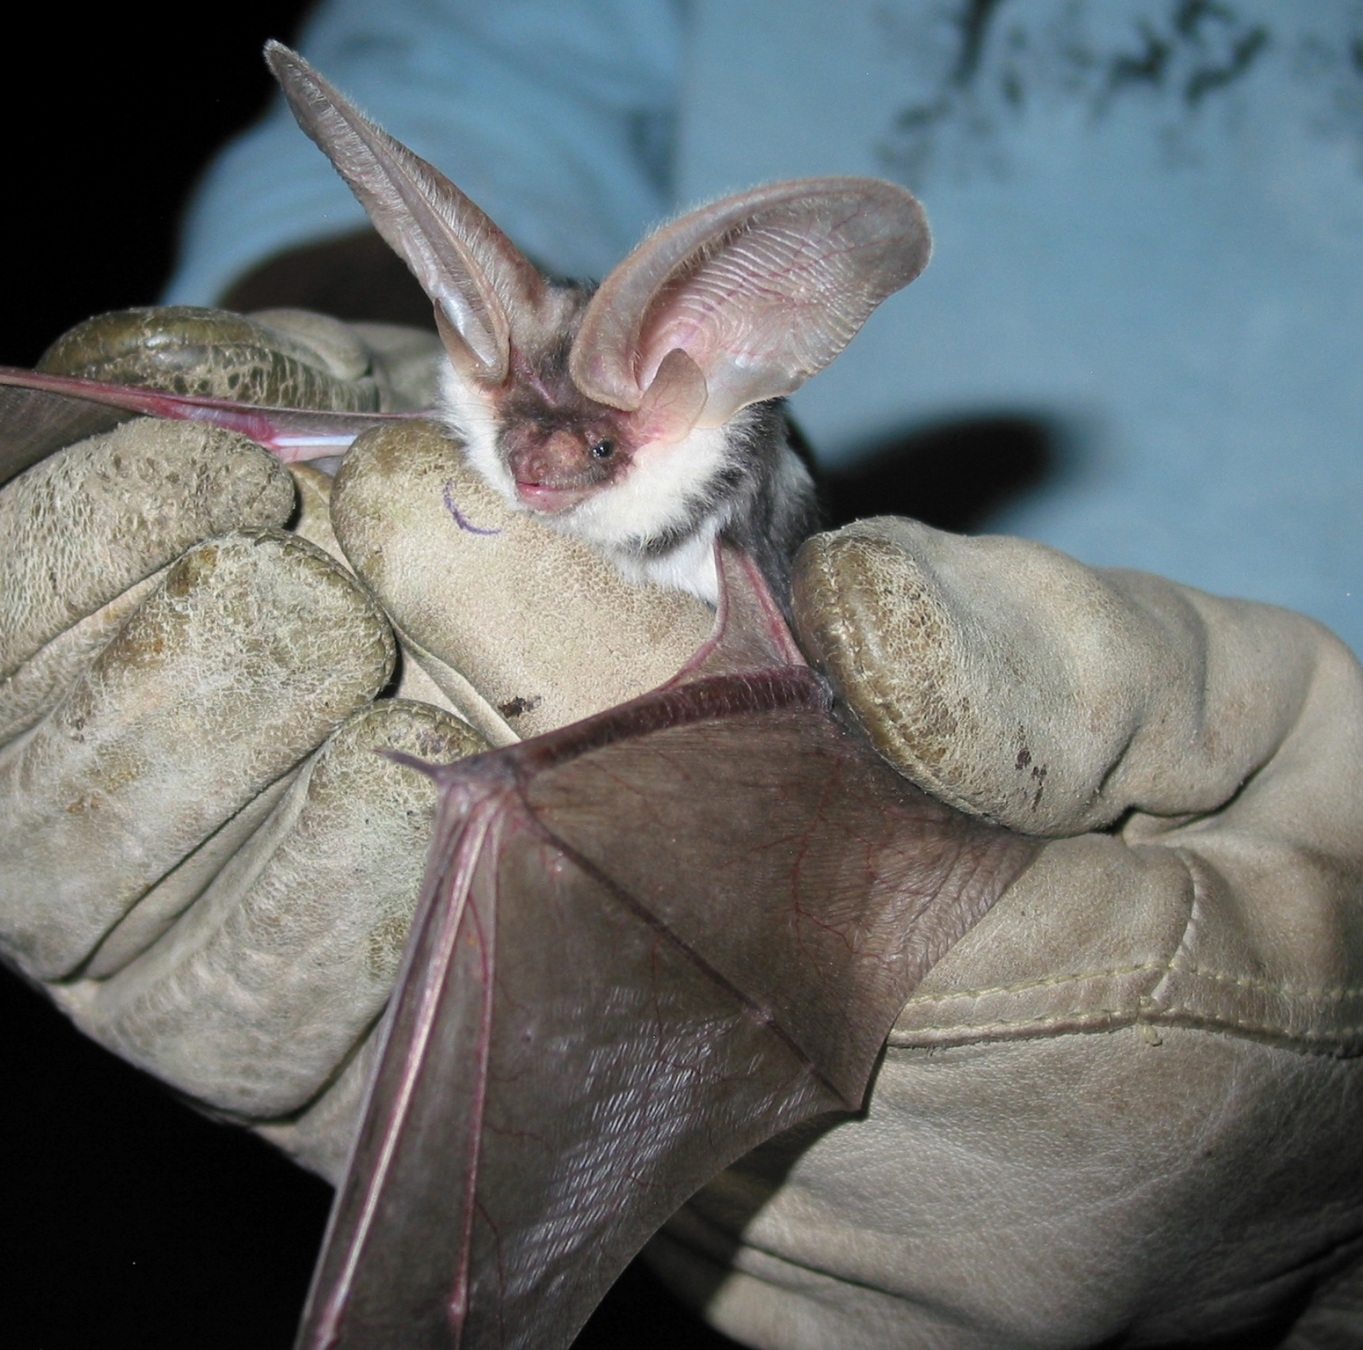 spotted bat - Euderma maculatum